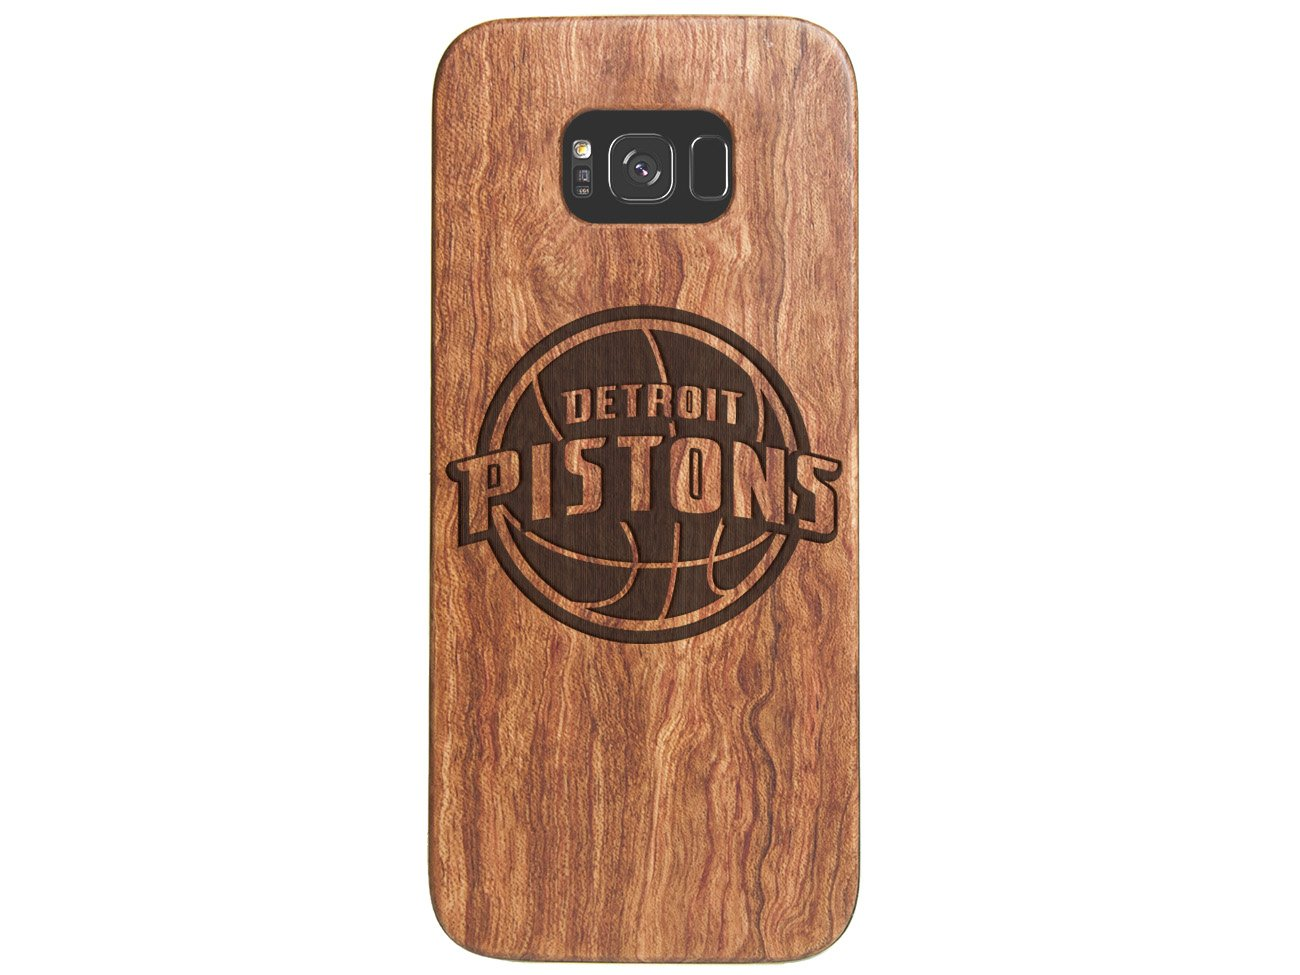 Detroit Pistons Galaxy S8 Case